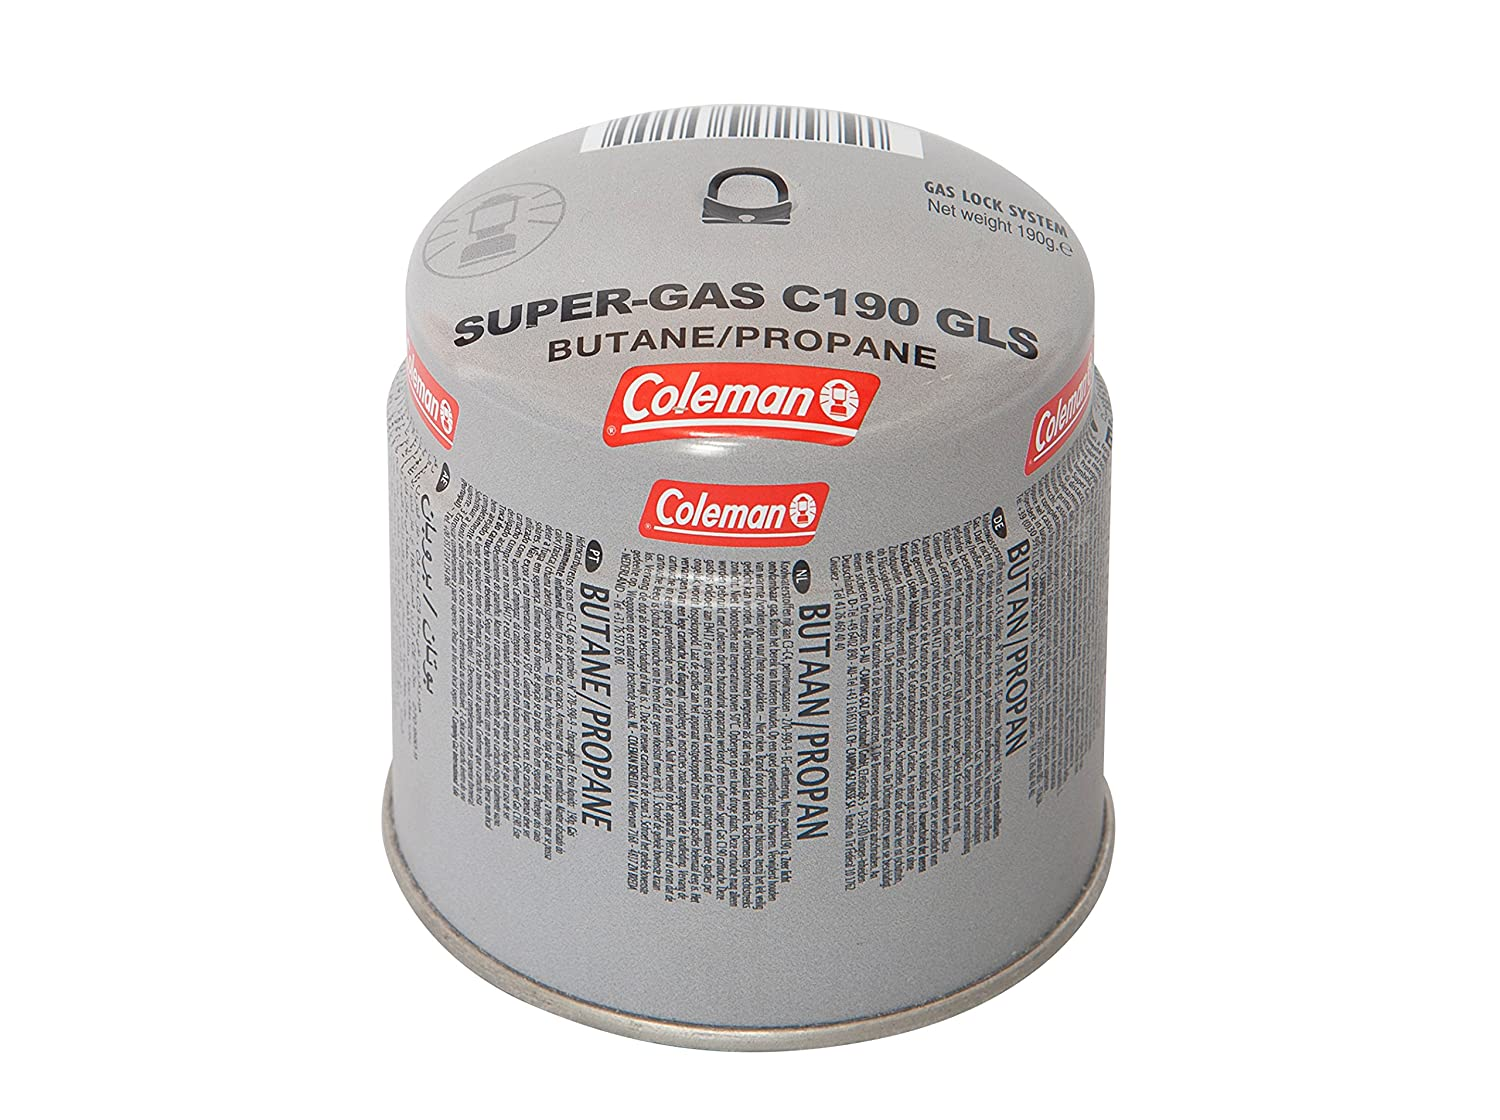 Coleman Camping Stove Gas Cartridge C190 GLS – Cartridge for; with 80/20 Butane/Propane Mix Gas Cartridge, Weight: 190g, Disposable Cartridge CMNS5|#Coleman 3000002280